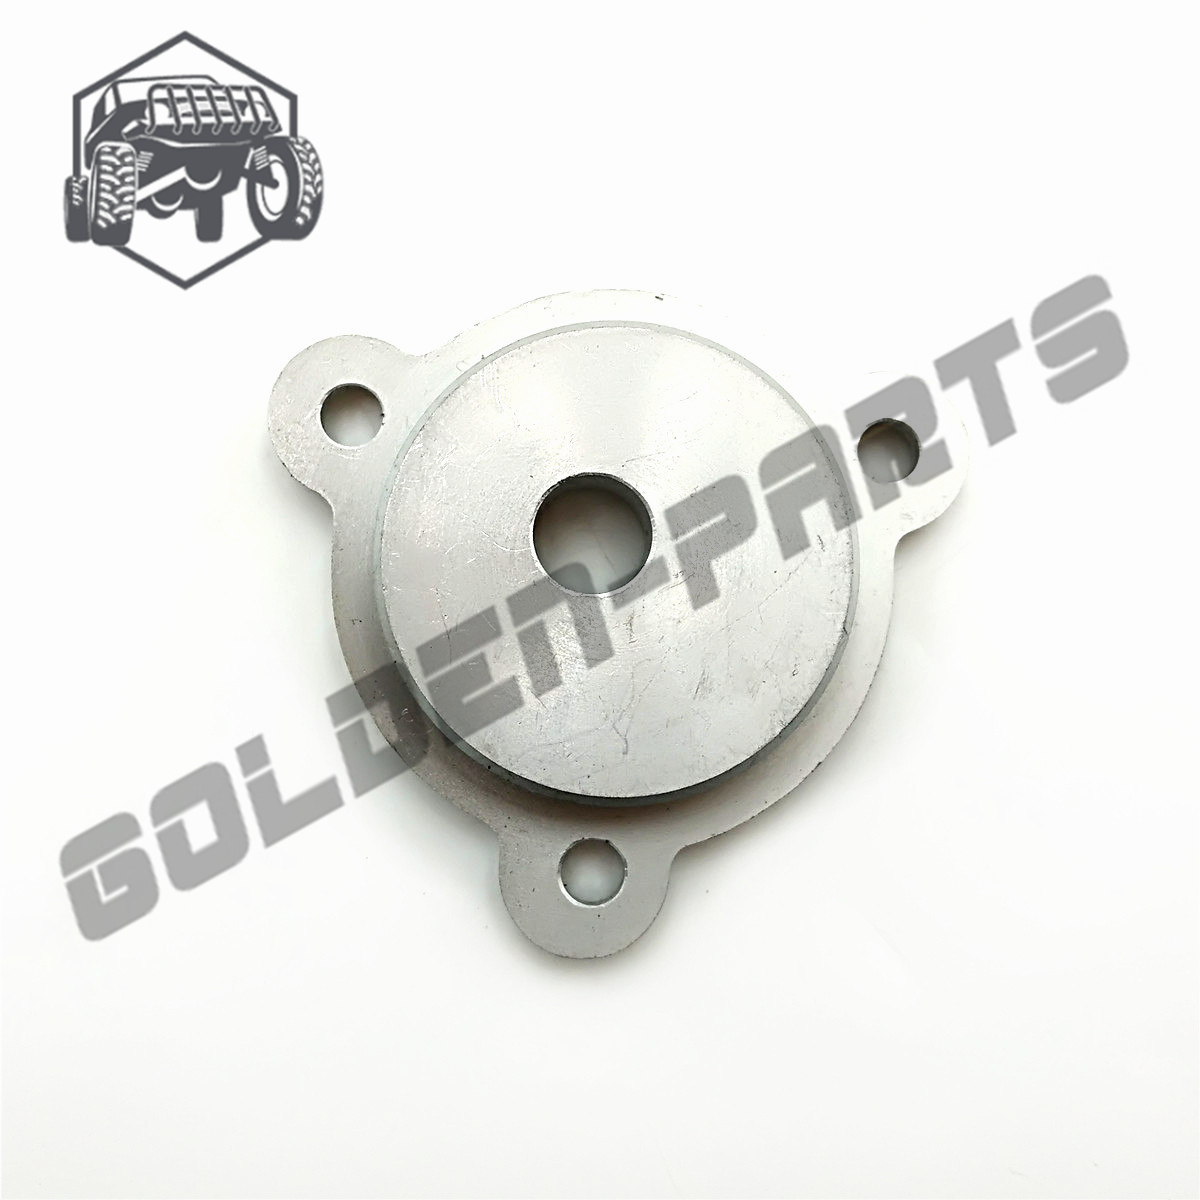 Oil filter cover fit for Odes LZ800 RM800 800 ATV UTV liangzi SIDE BY SIDE Dominator Raider Assailant ENGINE 21040111801